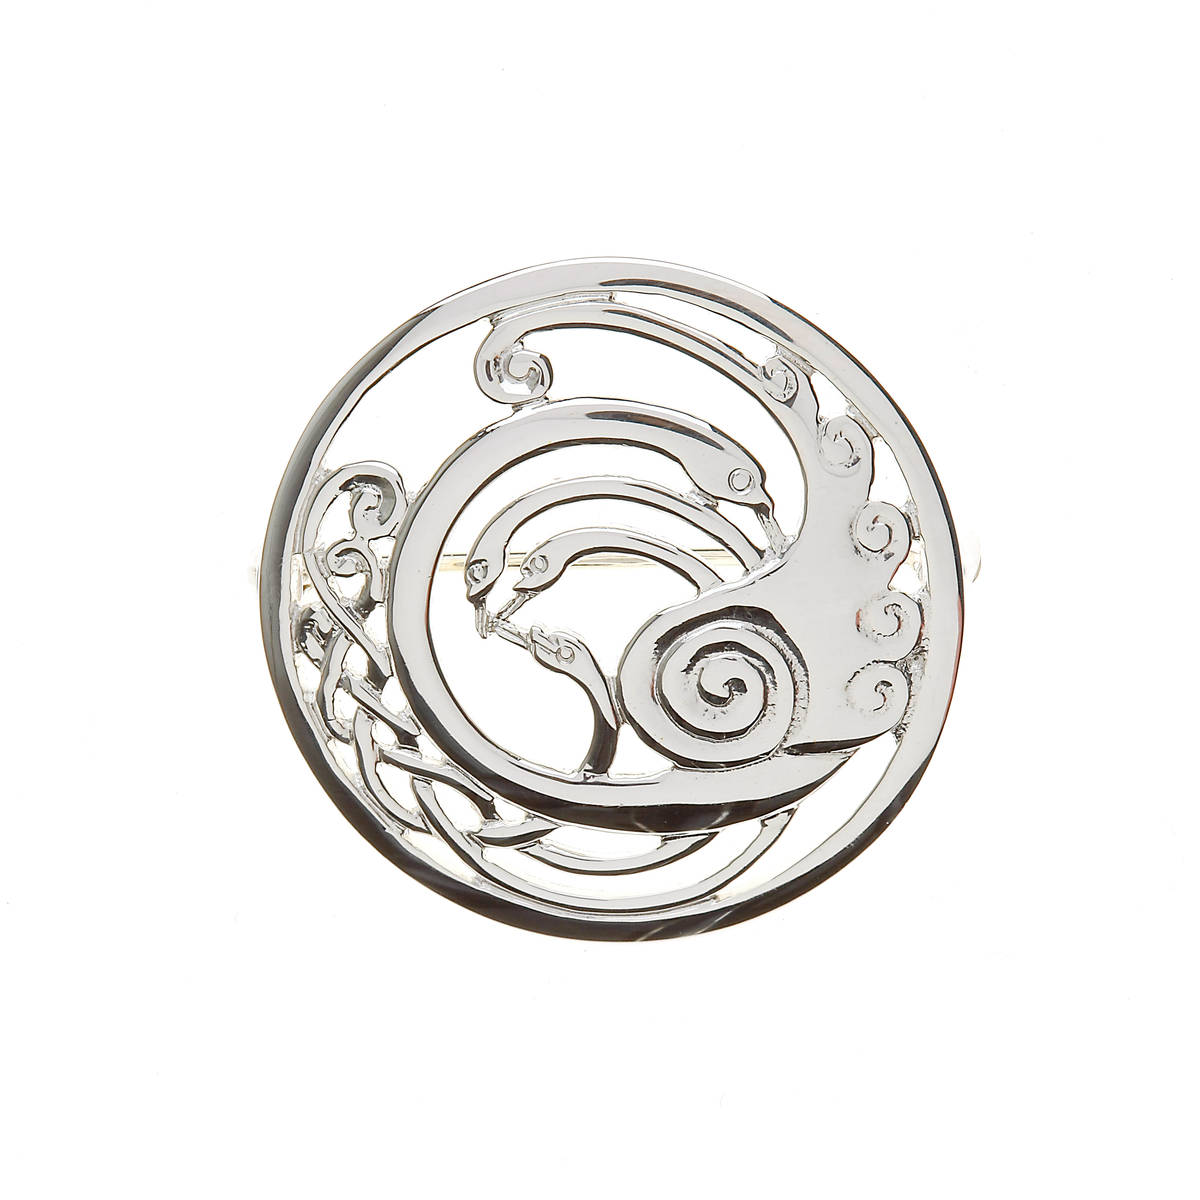 LARGE CHILDREN OF LIR BROOCH BOXED. This is truly a beautiful soft finish piece of jewellery and sure to be admired and commented on.